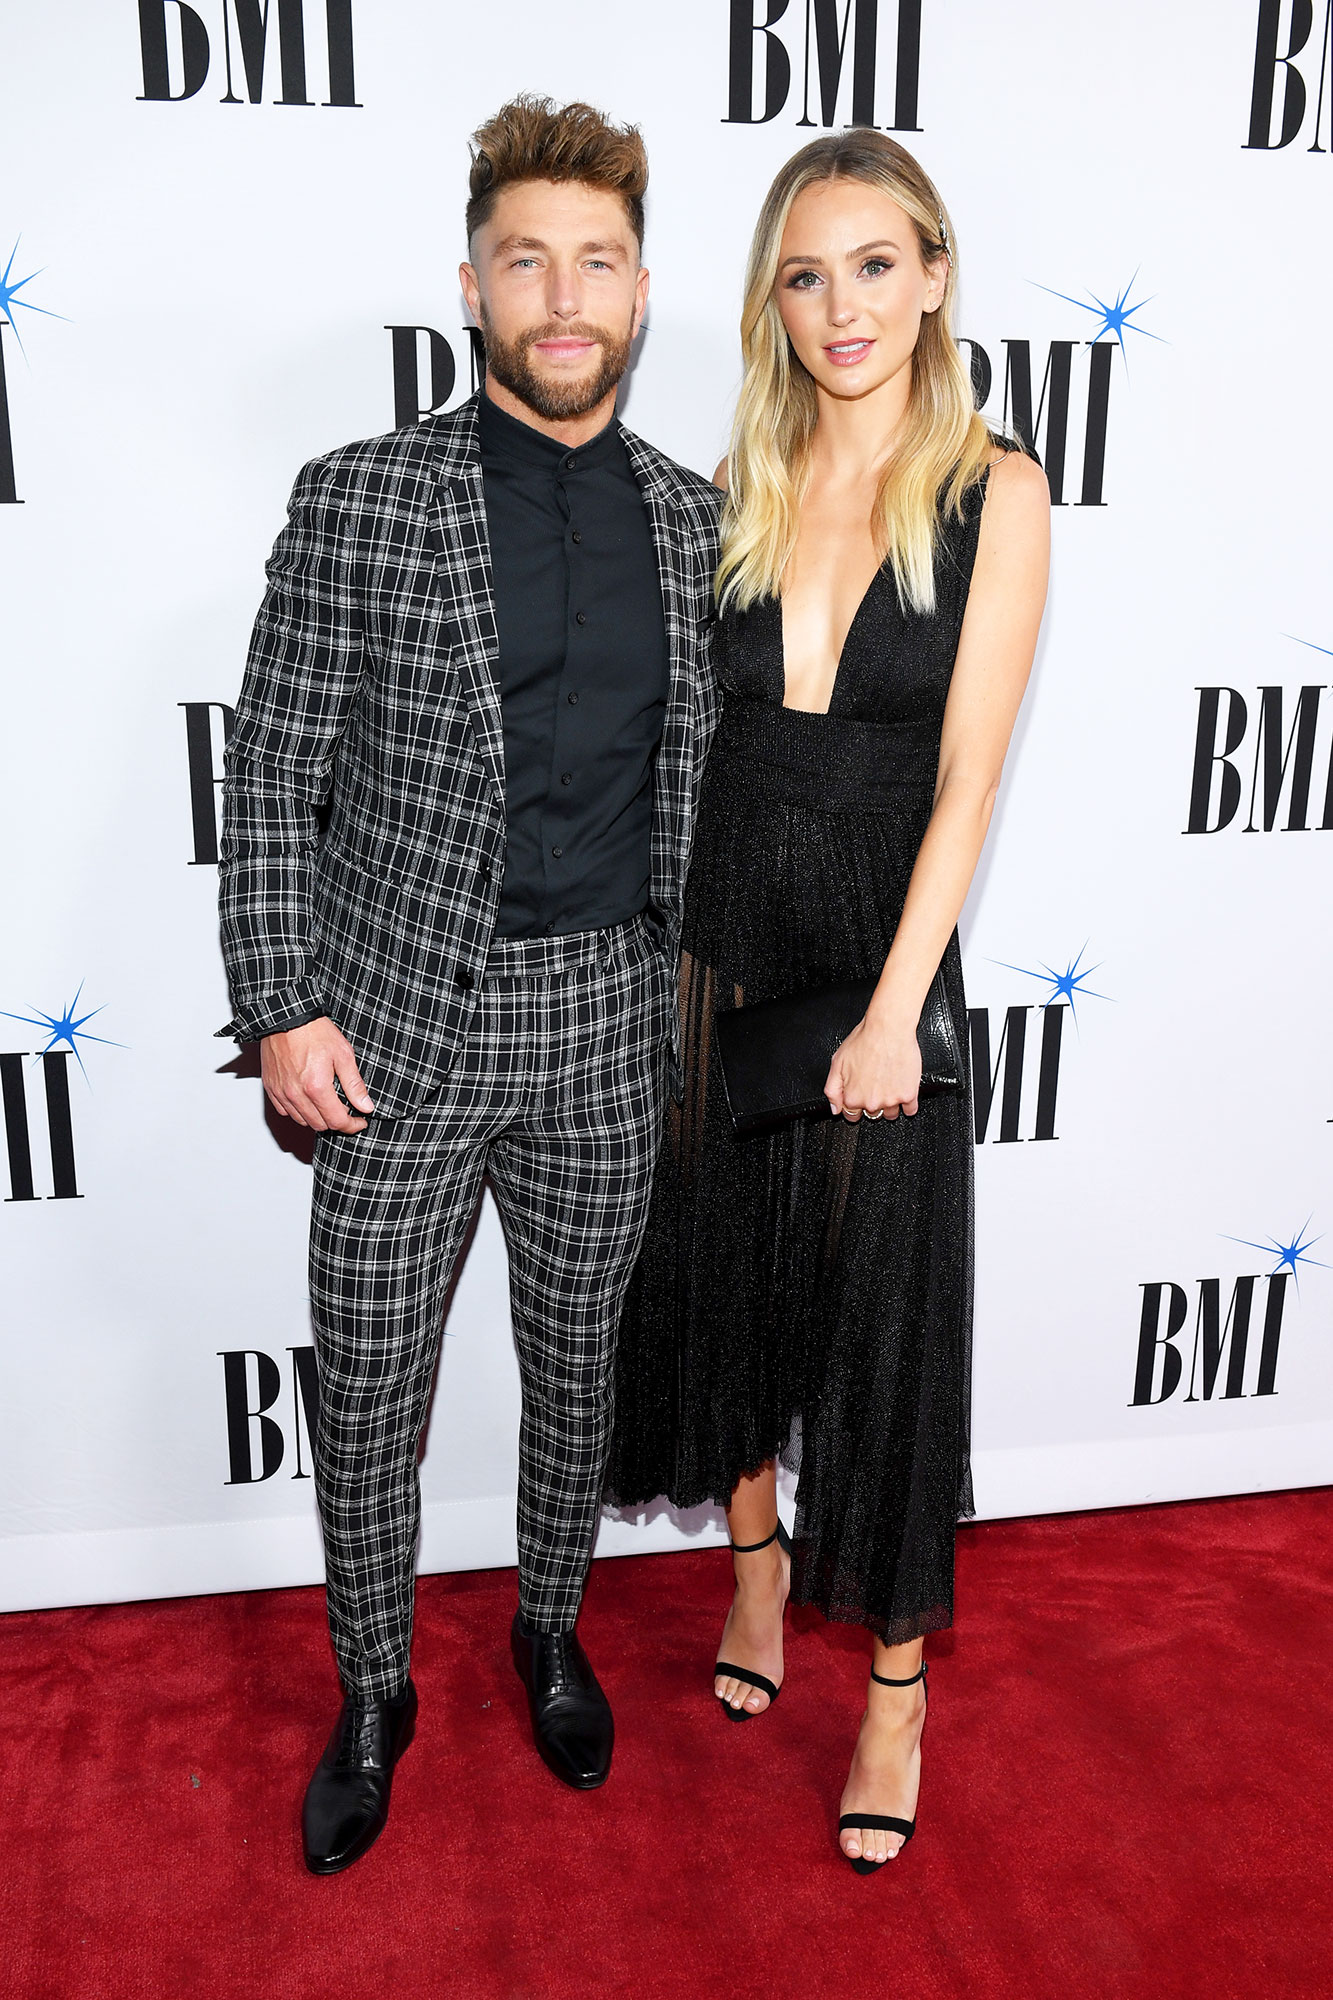 "Couples Who Made Their Red Carpet Debuts at an Awards Show - The Bachelor alum went public with her romance with the country crooner at the 2018 BMI Country Music Awards. Later in the night, she watched as the ""For Her"" singer performed."